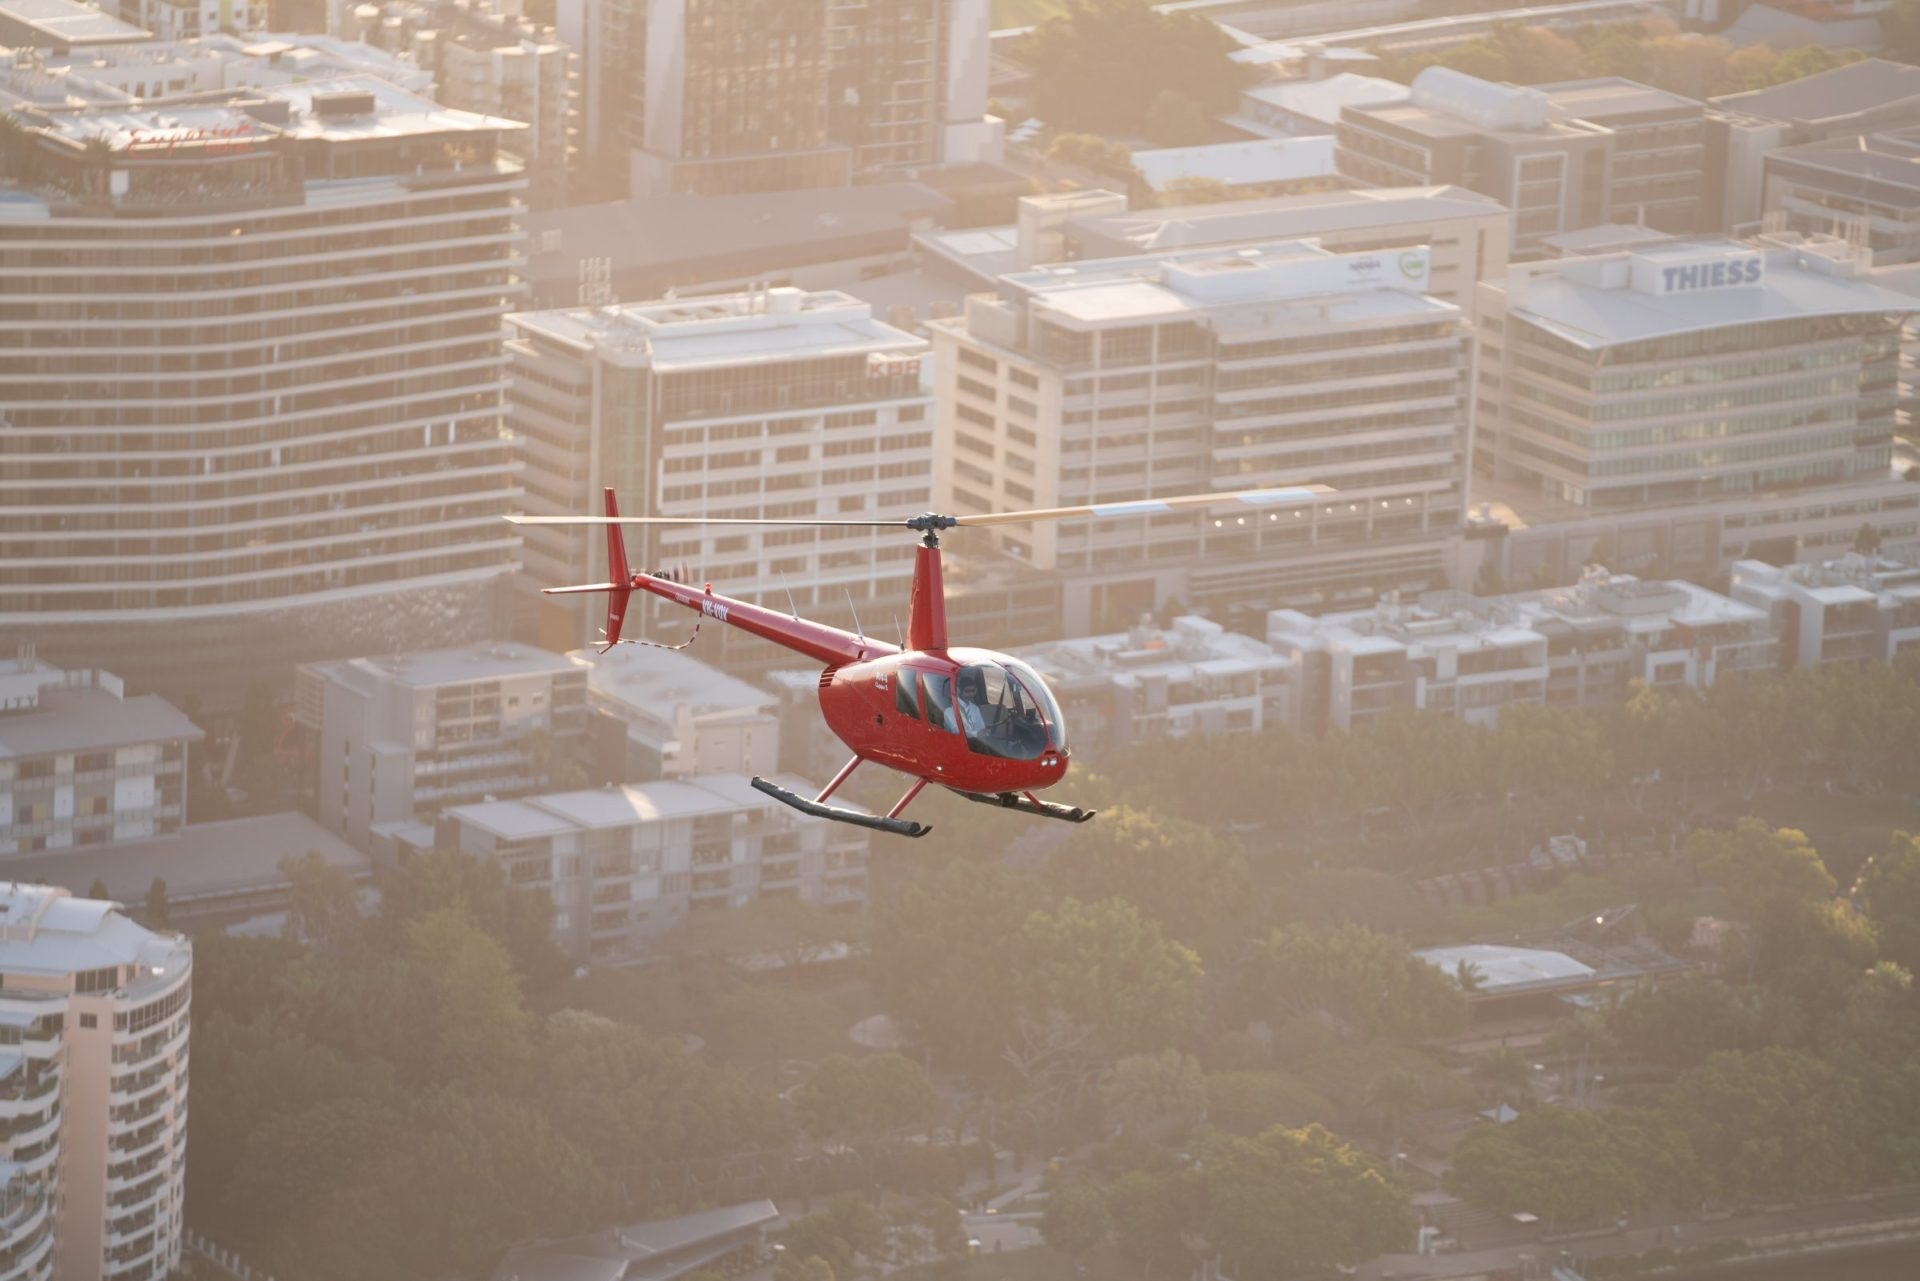 Our Red R44